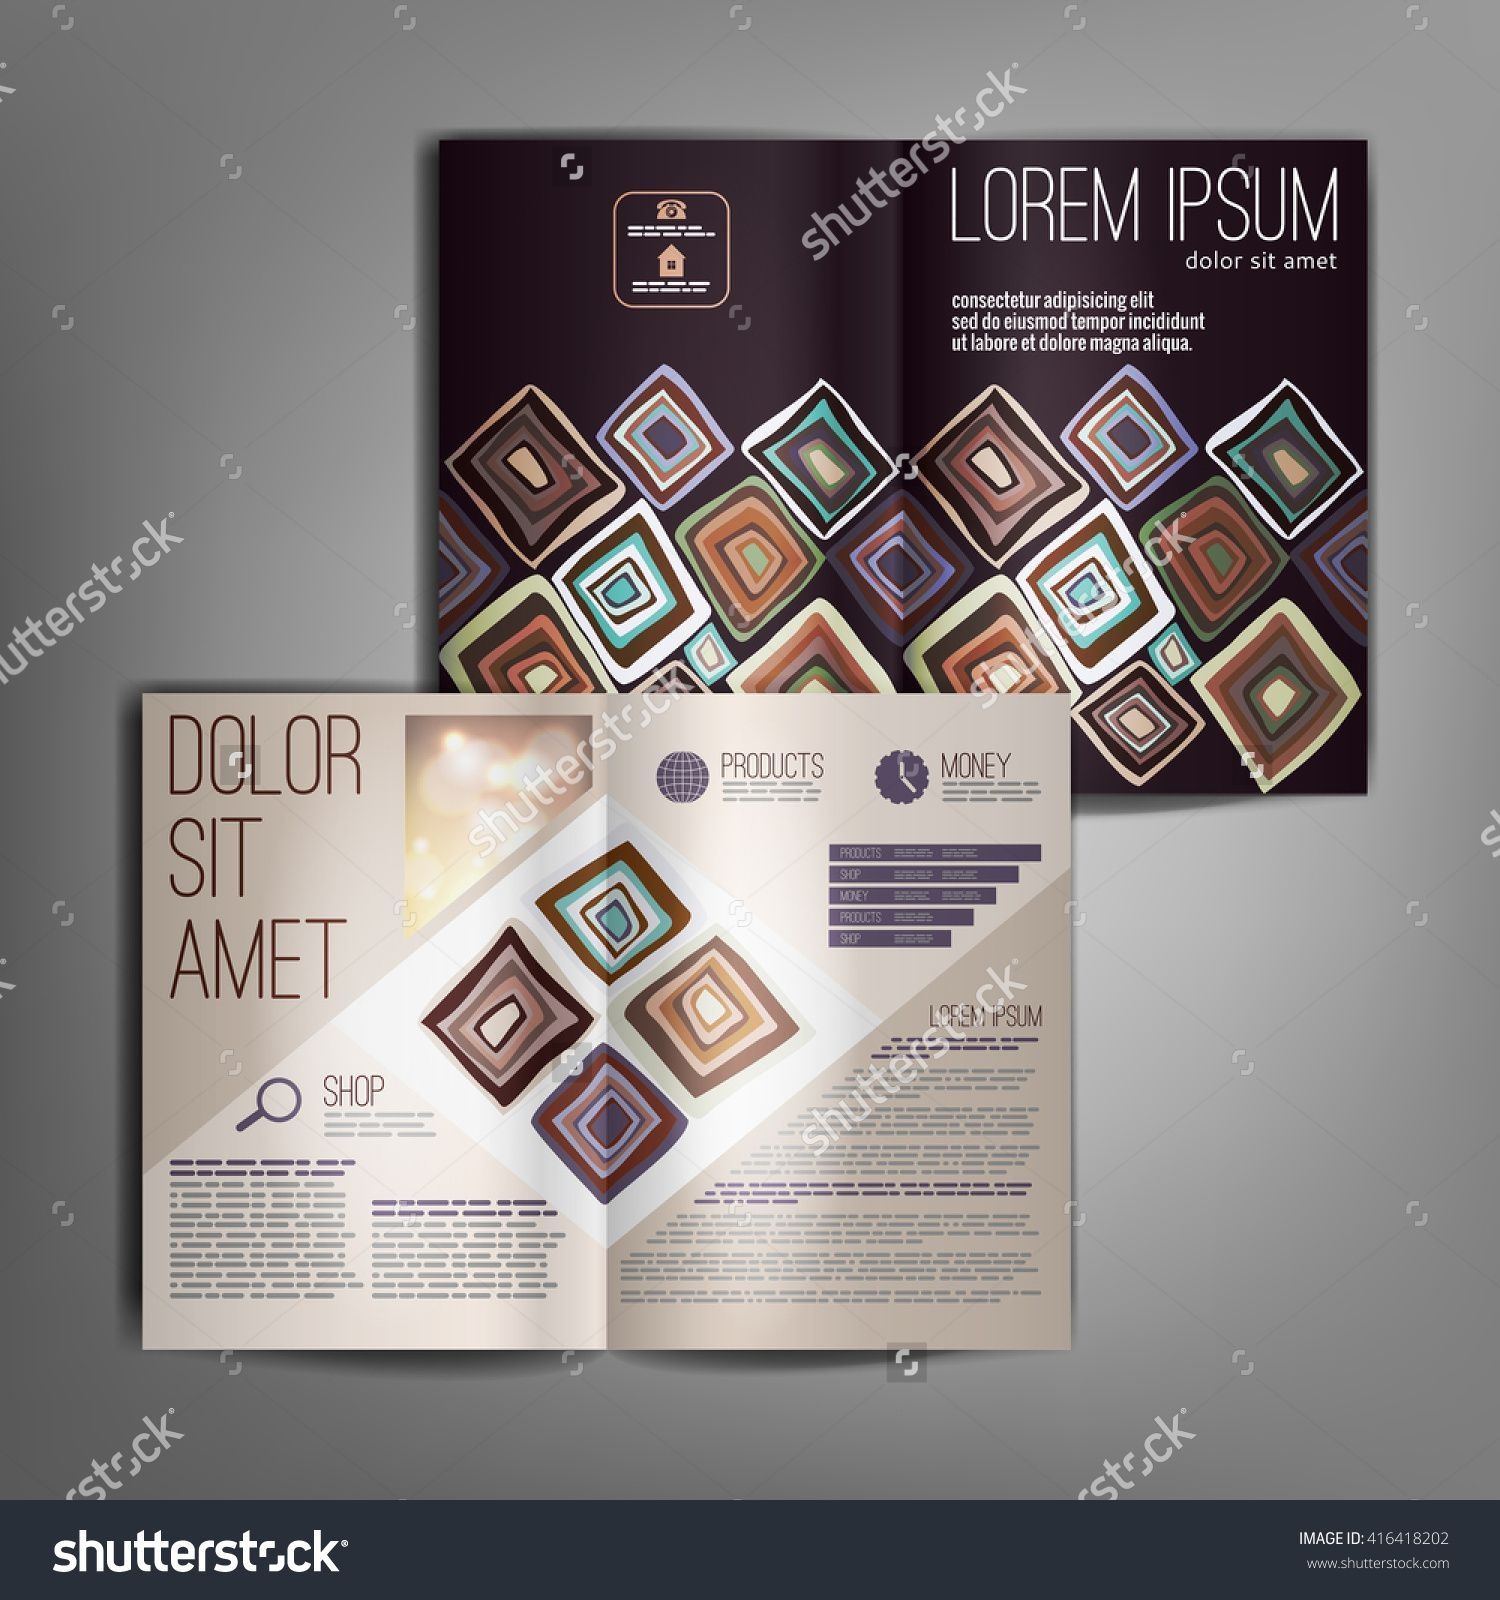 Business brochure design template with hand drawn pattern of rhombuses. Vector flyer layout, cover, poster design.